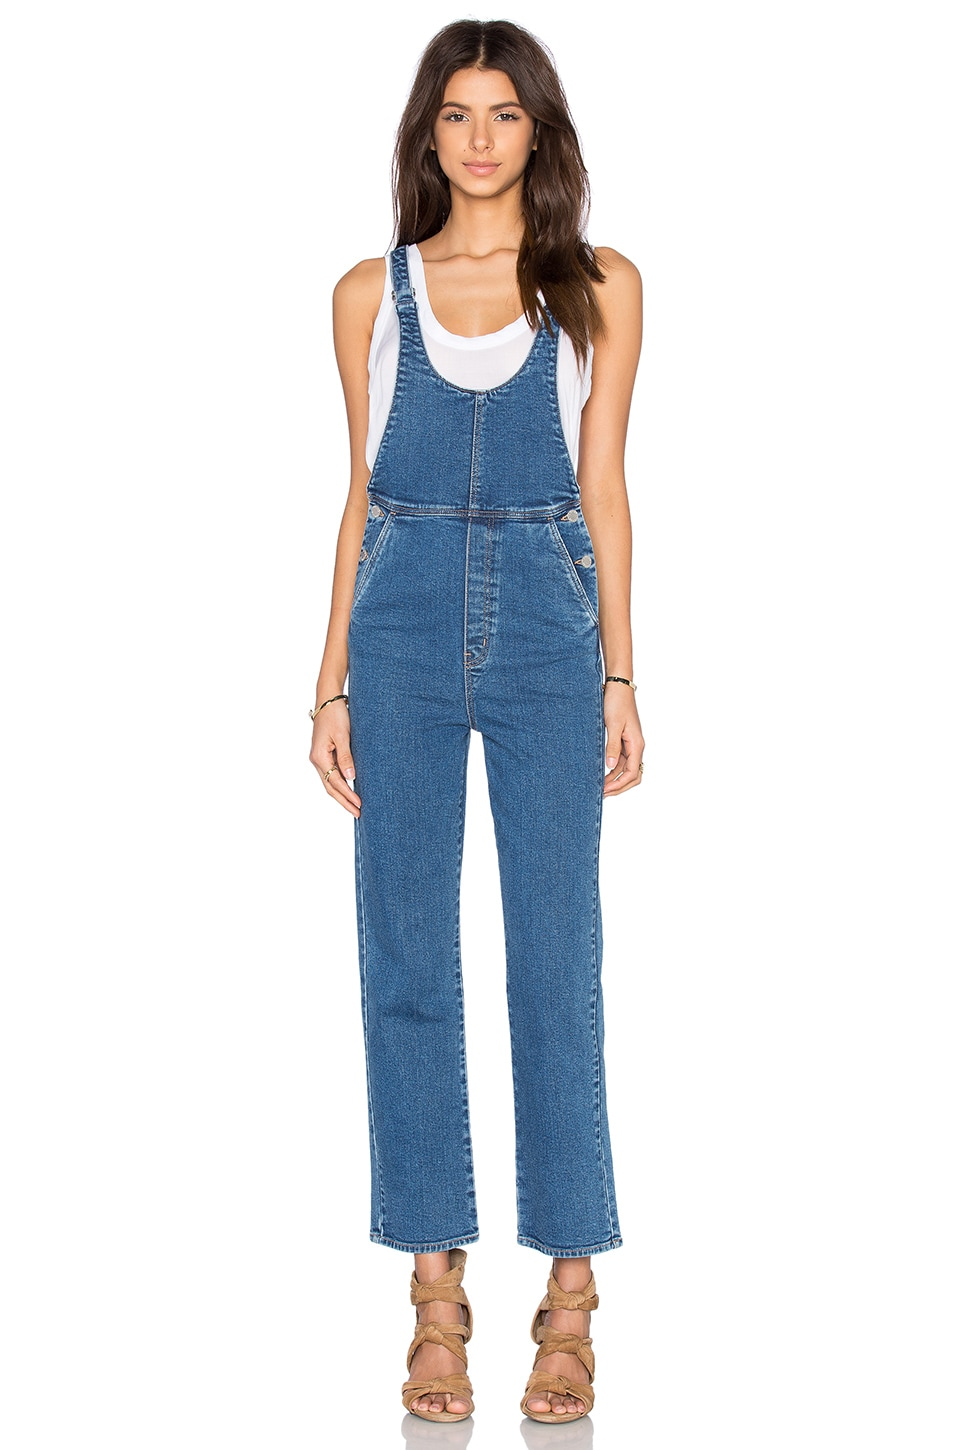 ROLLA'S Original Straight Overall in  Blue